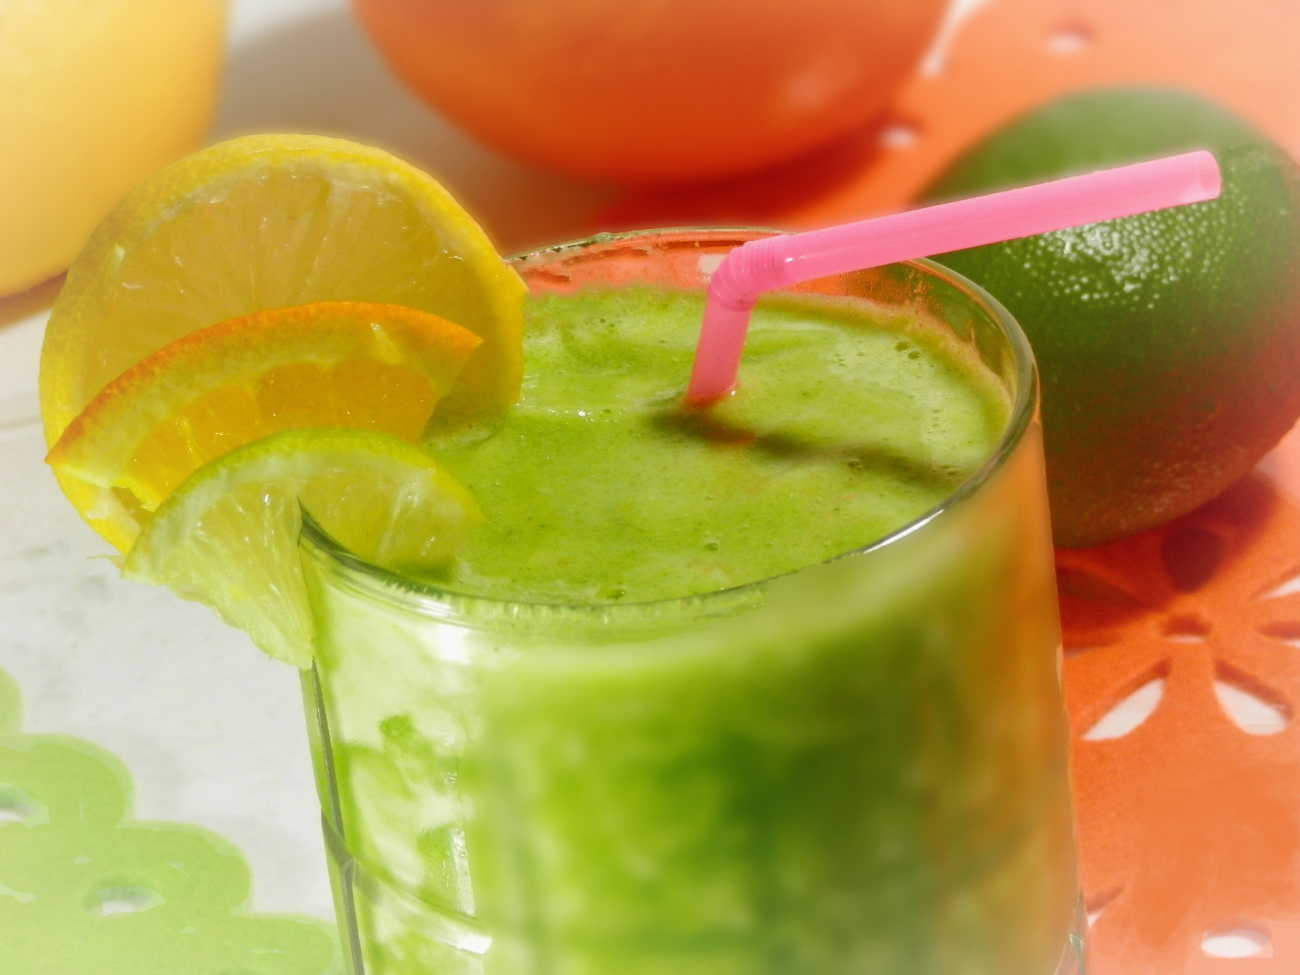 bright green smoothie with pink straw and lemon slice garnish